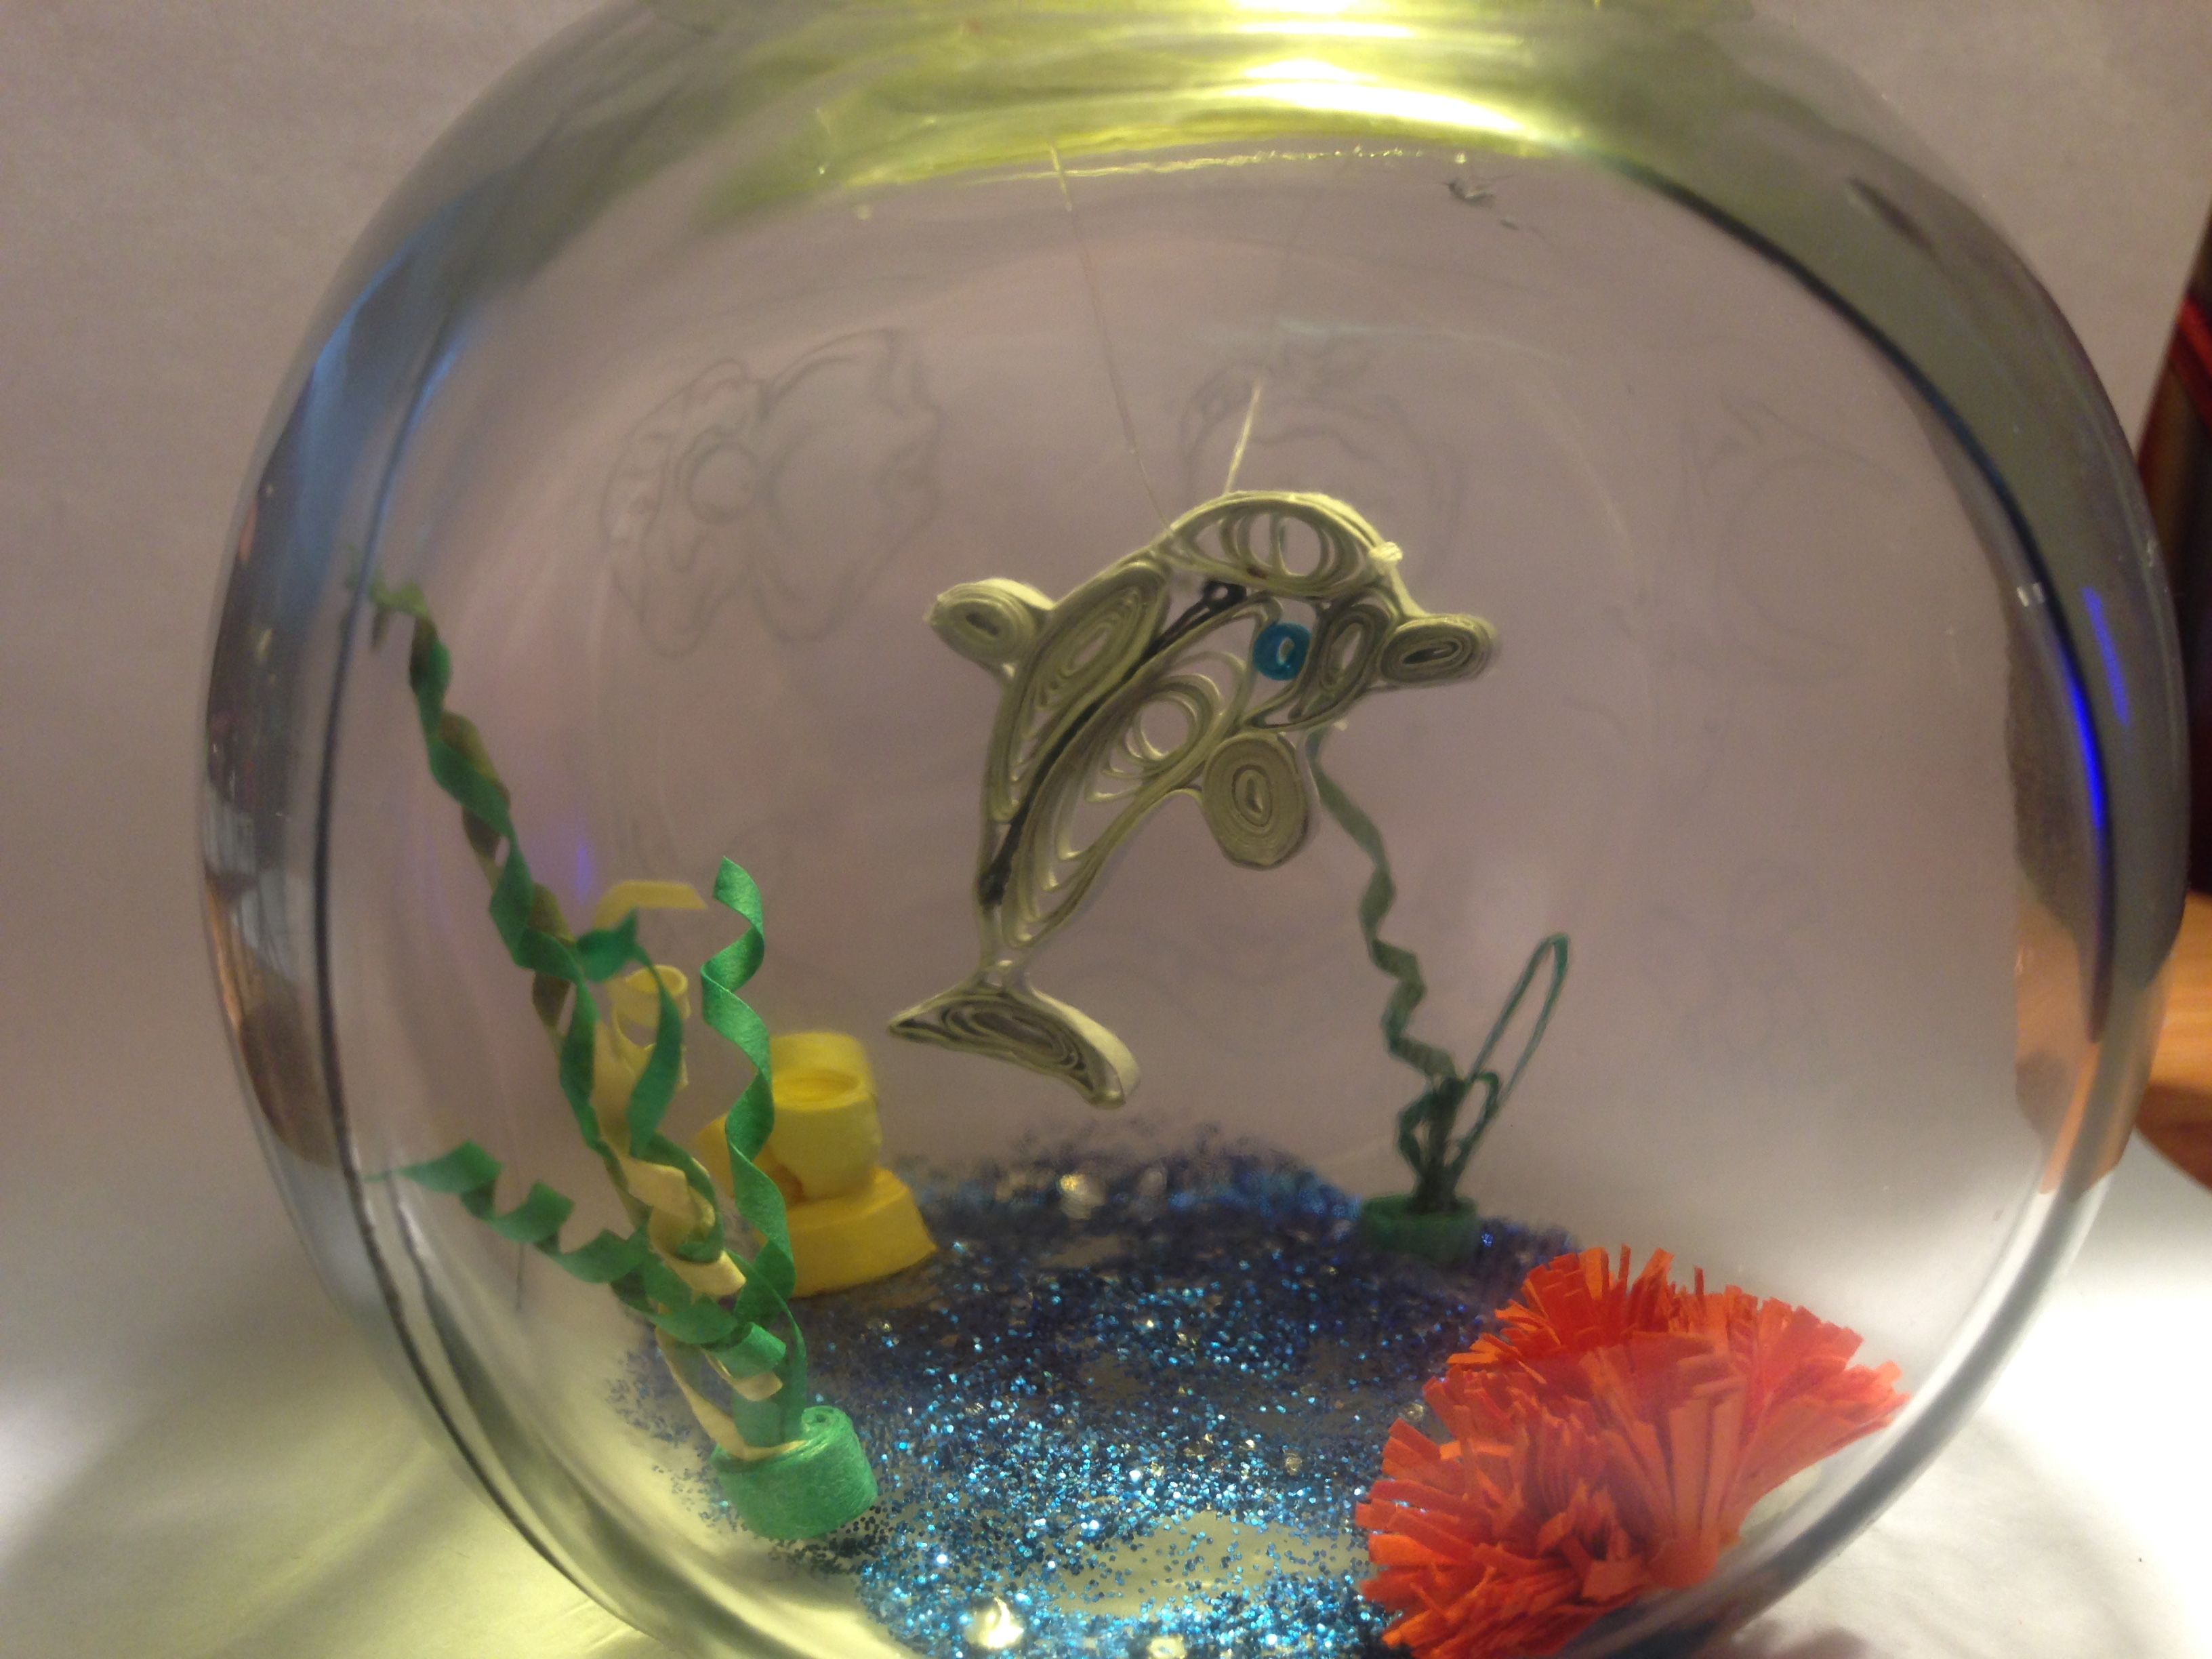 Sea Life in a Fishbowl